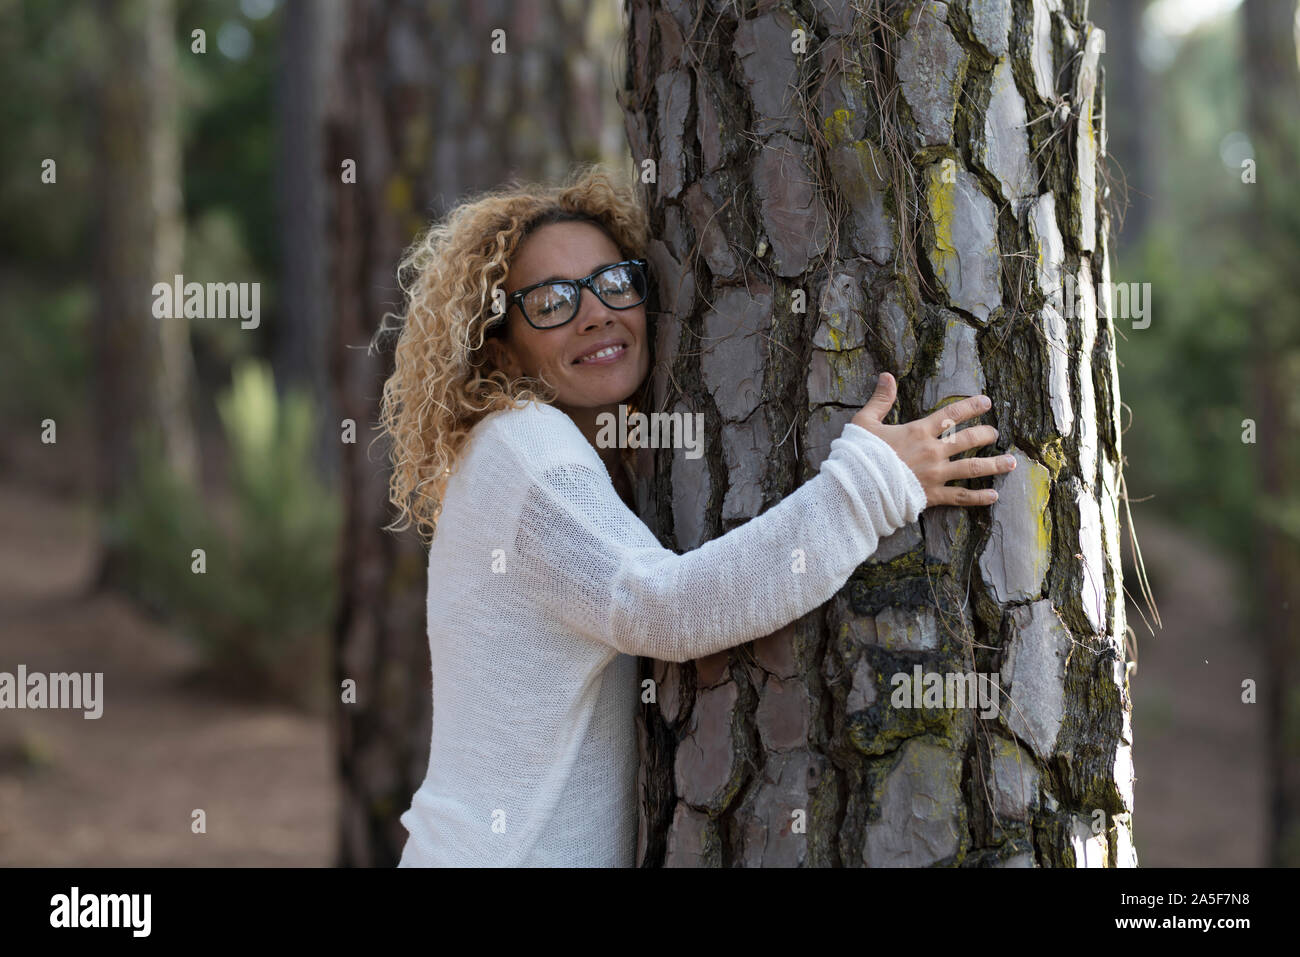 one woman hugging with close eyes a old tree on the forest - love and affection at the wood - save the forest and climate change concept - respect nat Stock Photo